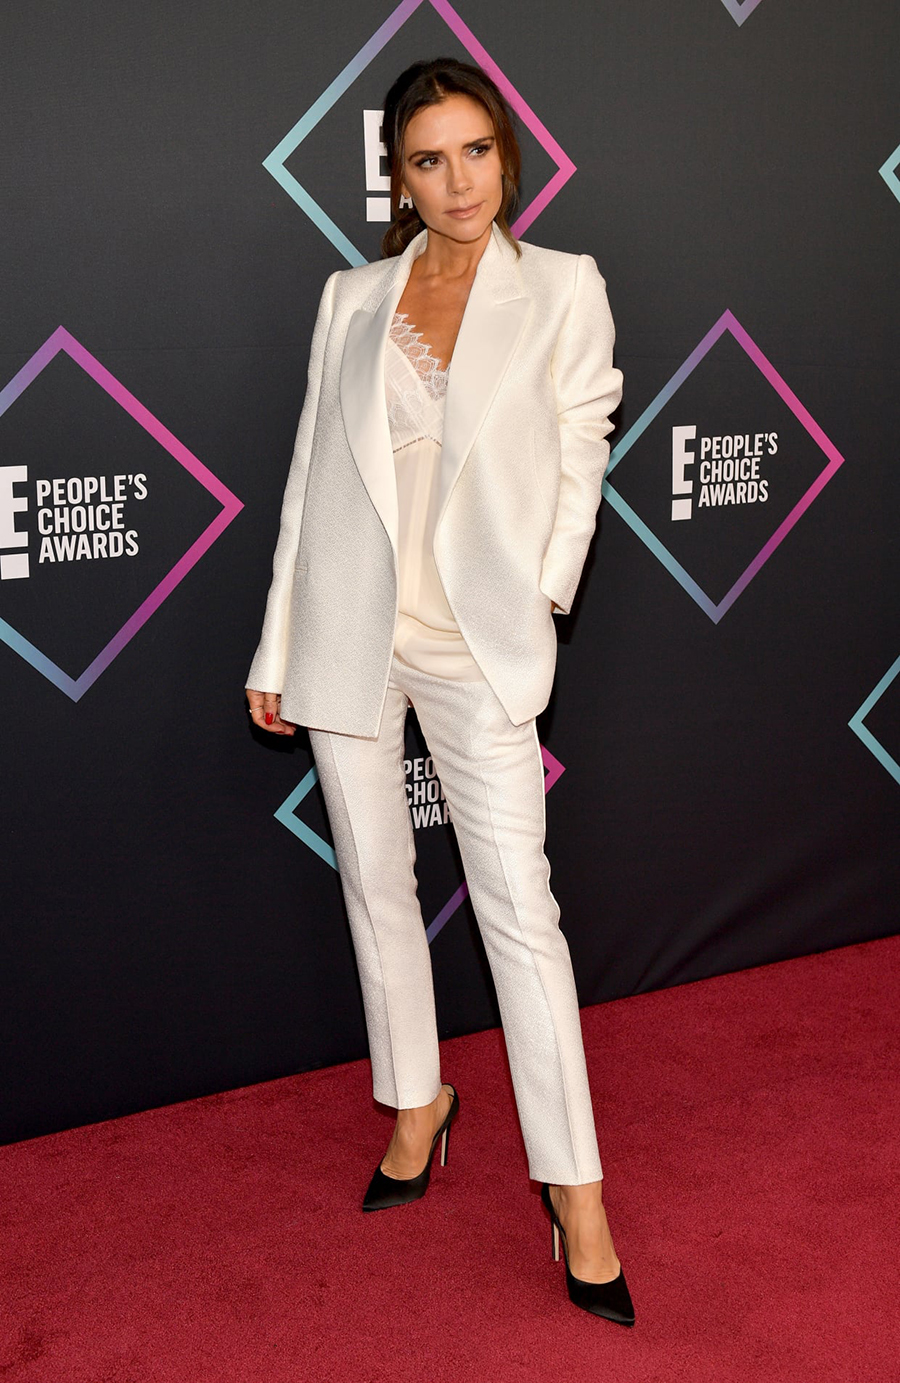 peoples-choice-awards-2018-best-dressed-12